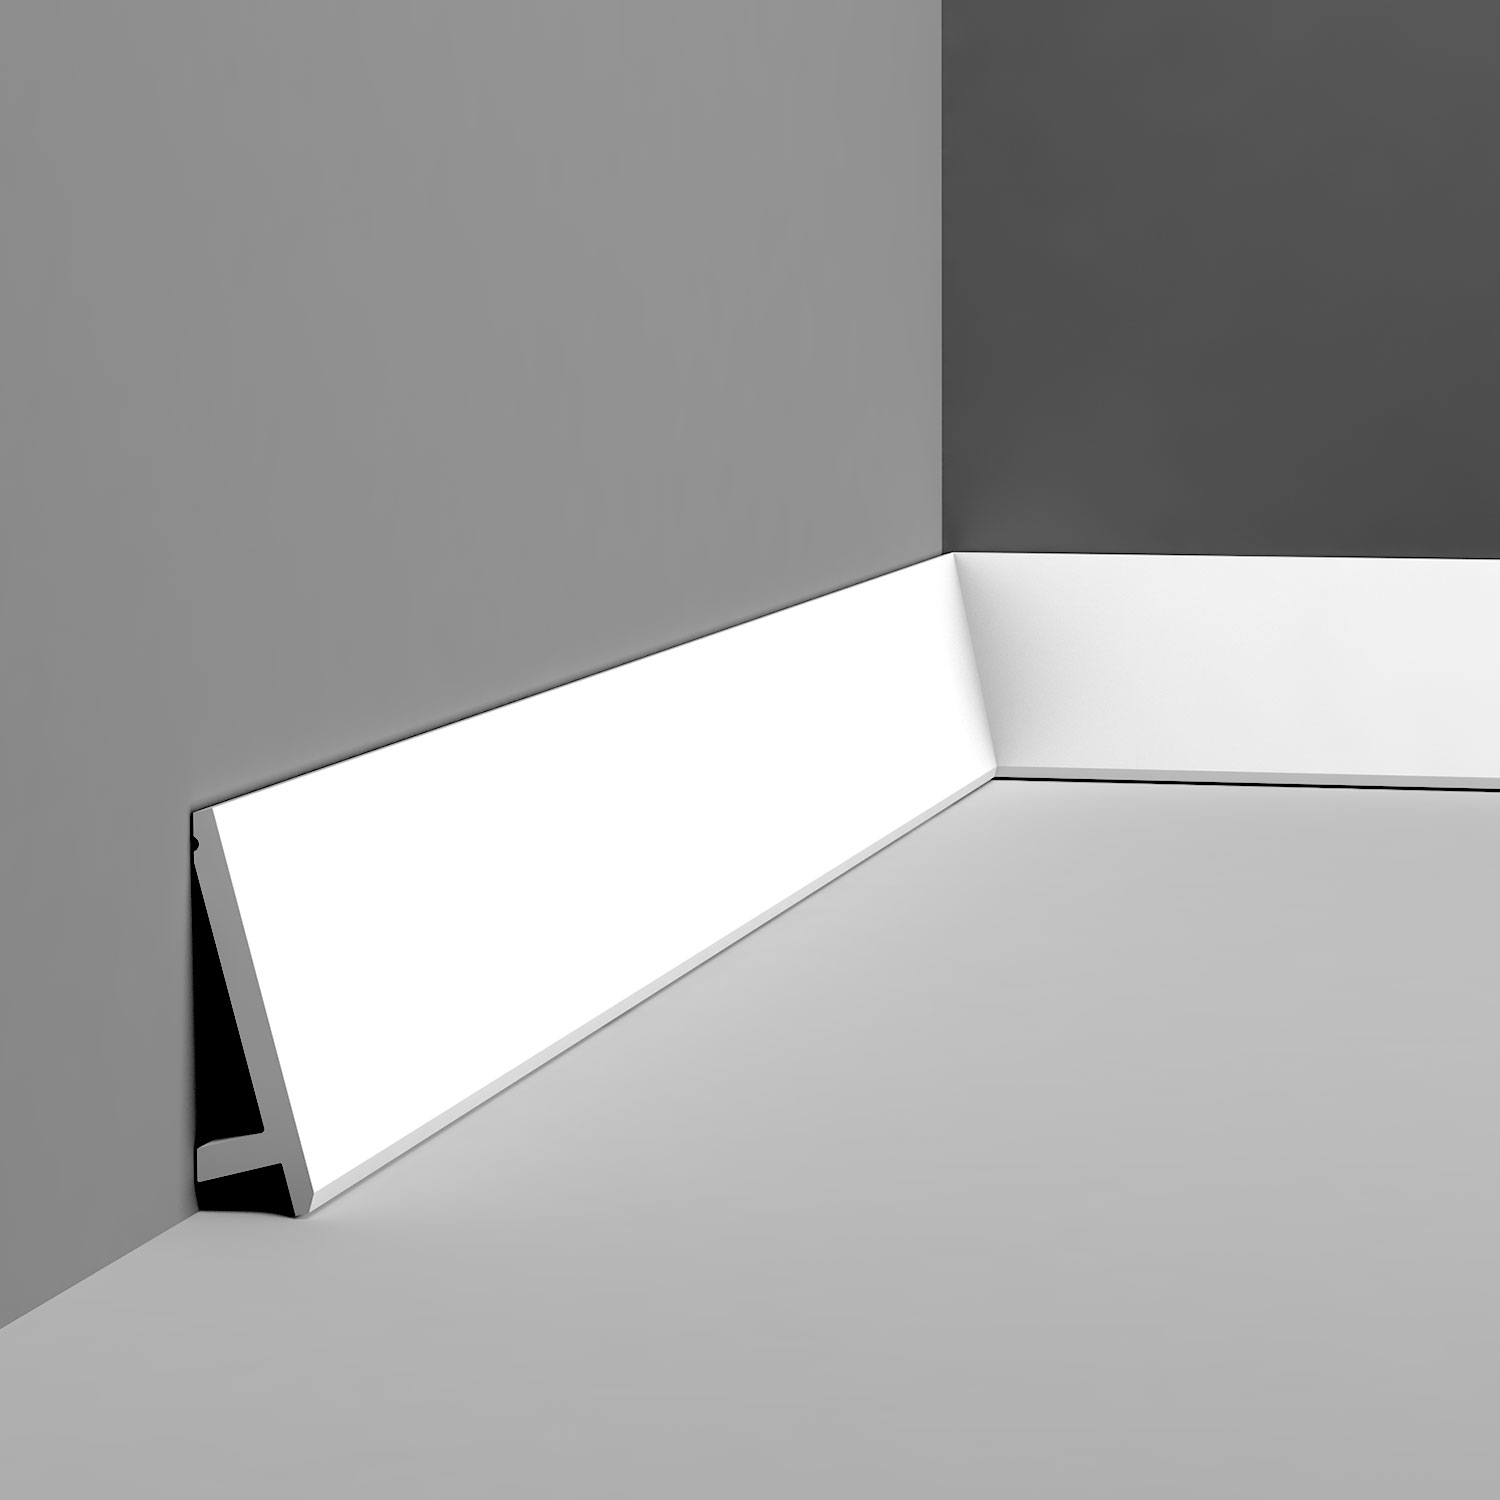 Crown Mouldings for Indirect Lighting